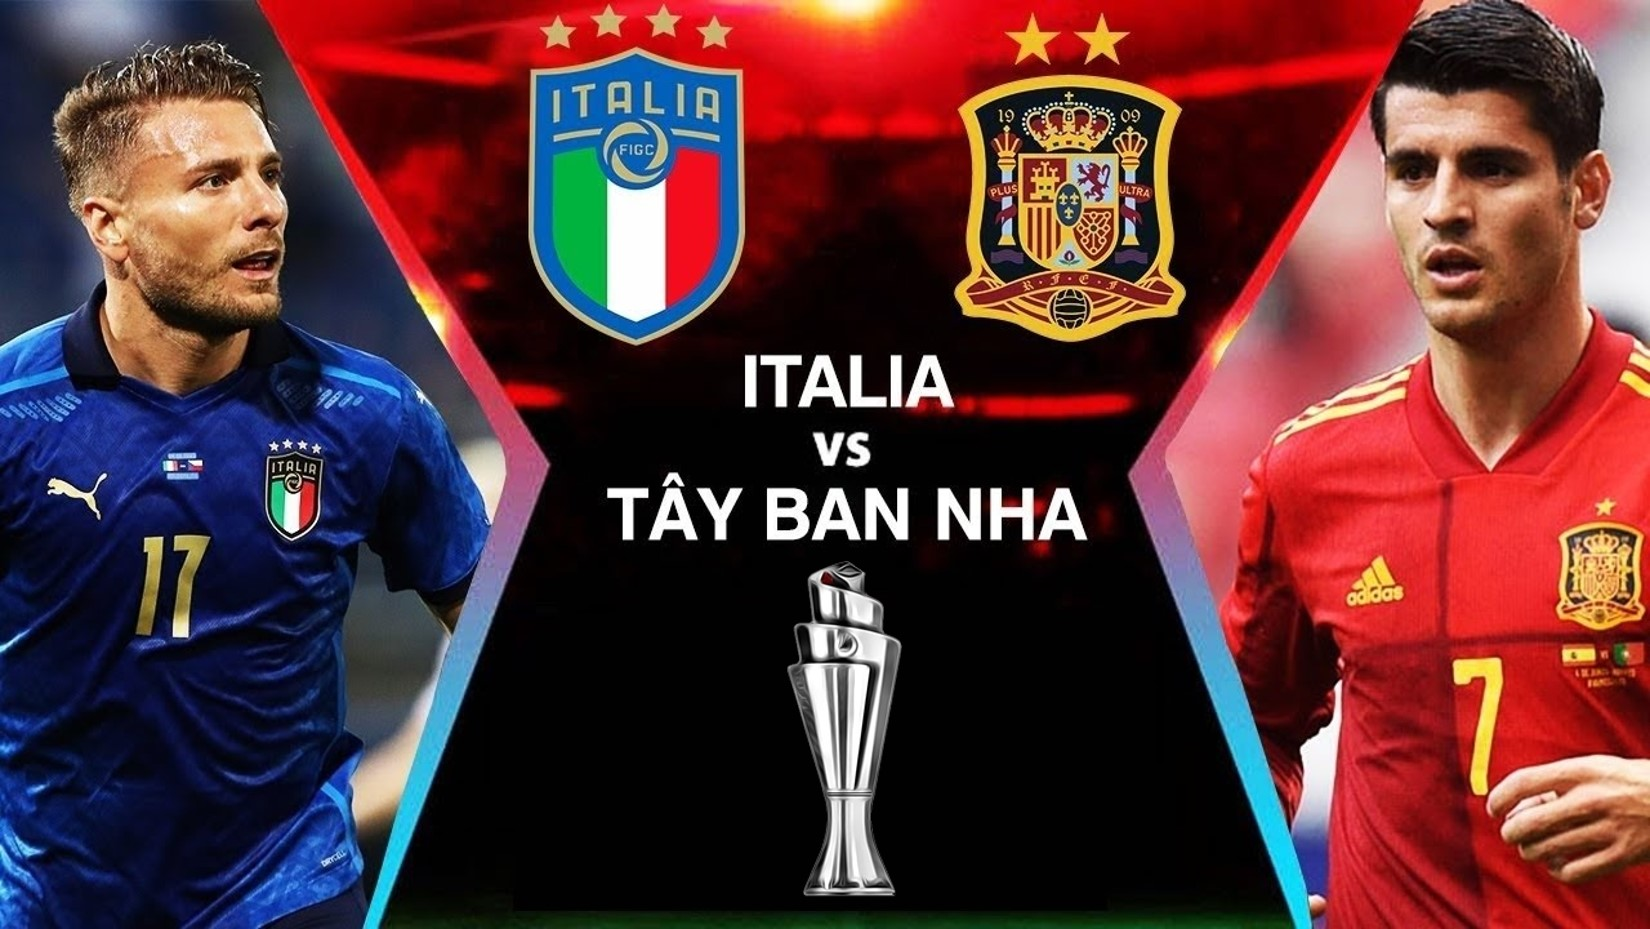 Football schedule today 7/10: Vietnam Tel to match, Italy rematch Spain 2